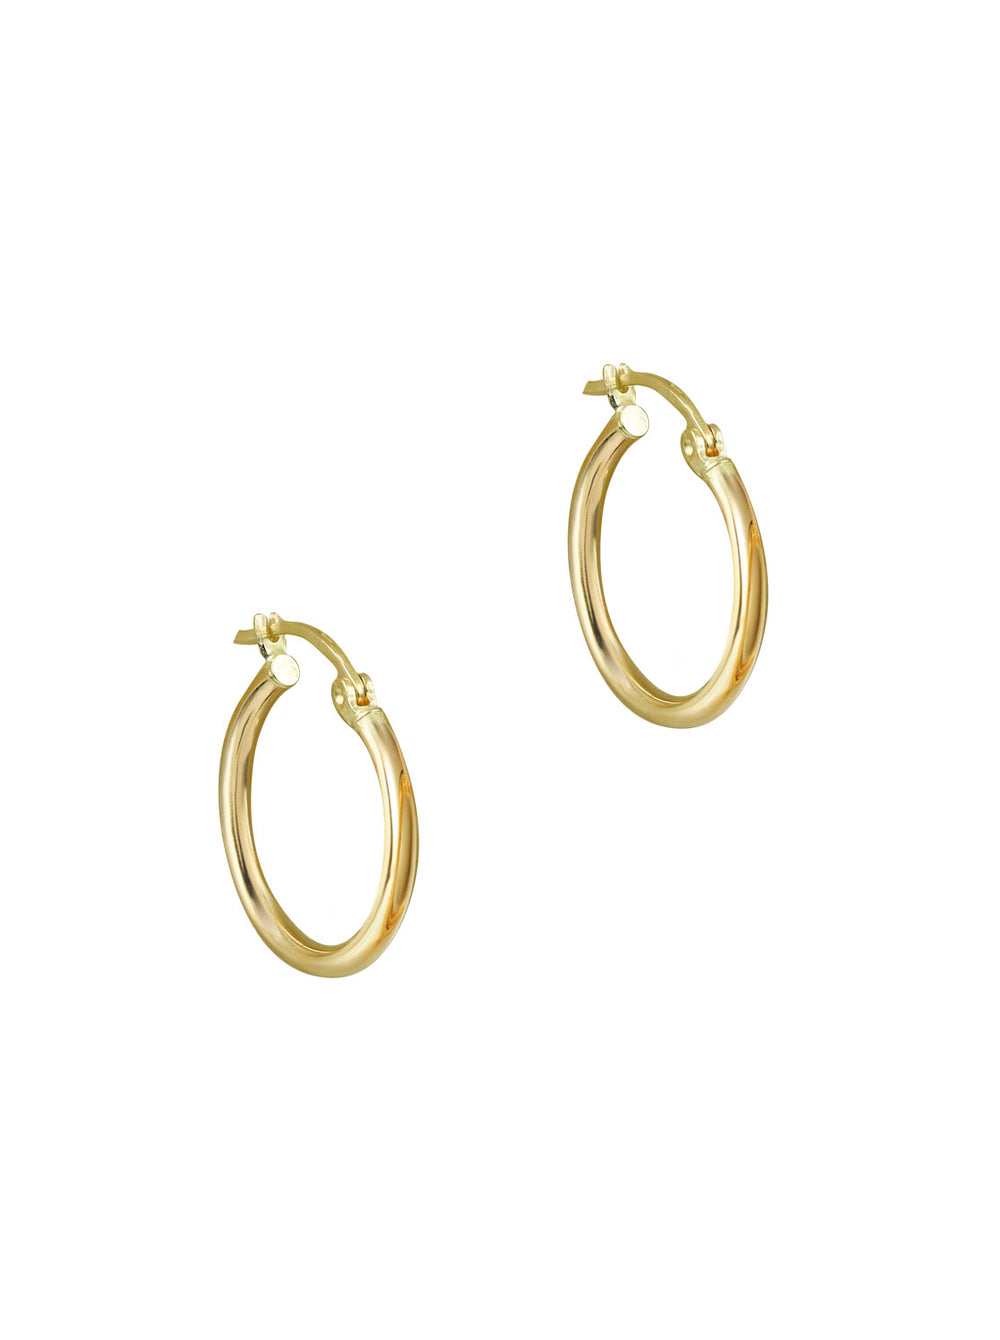 THE ESSENTIAL 10KT GOLD HUGGIE HOOP EARRINGS (MEDIUM)